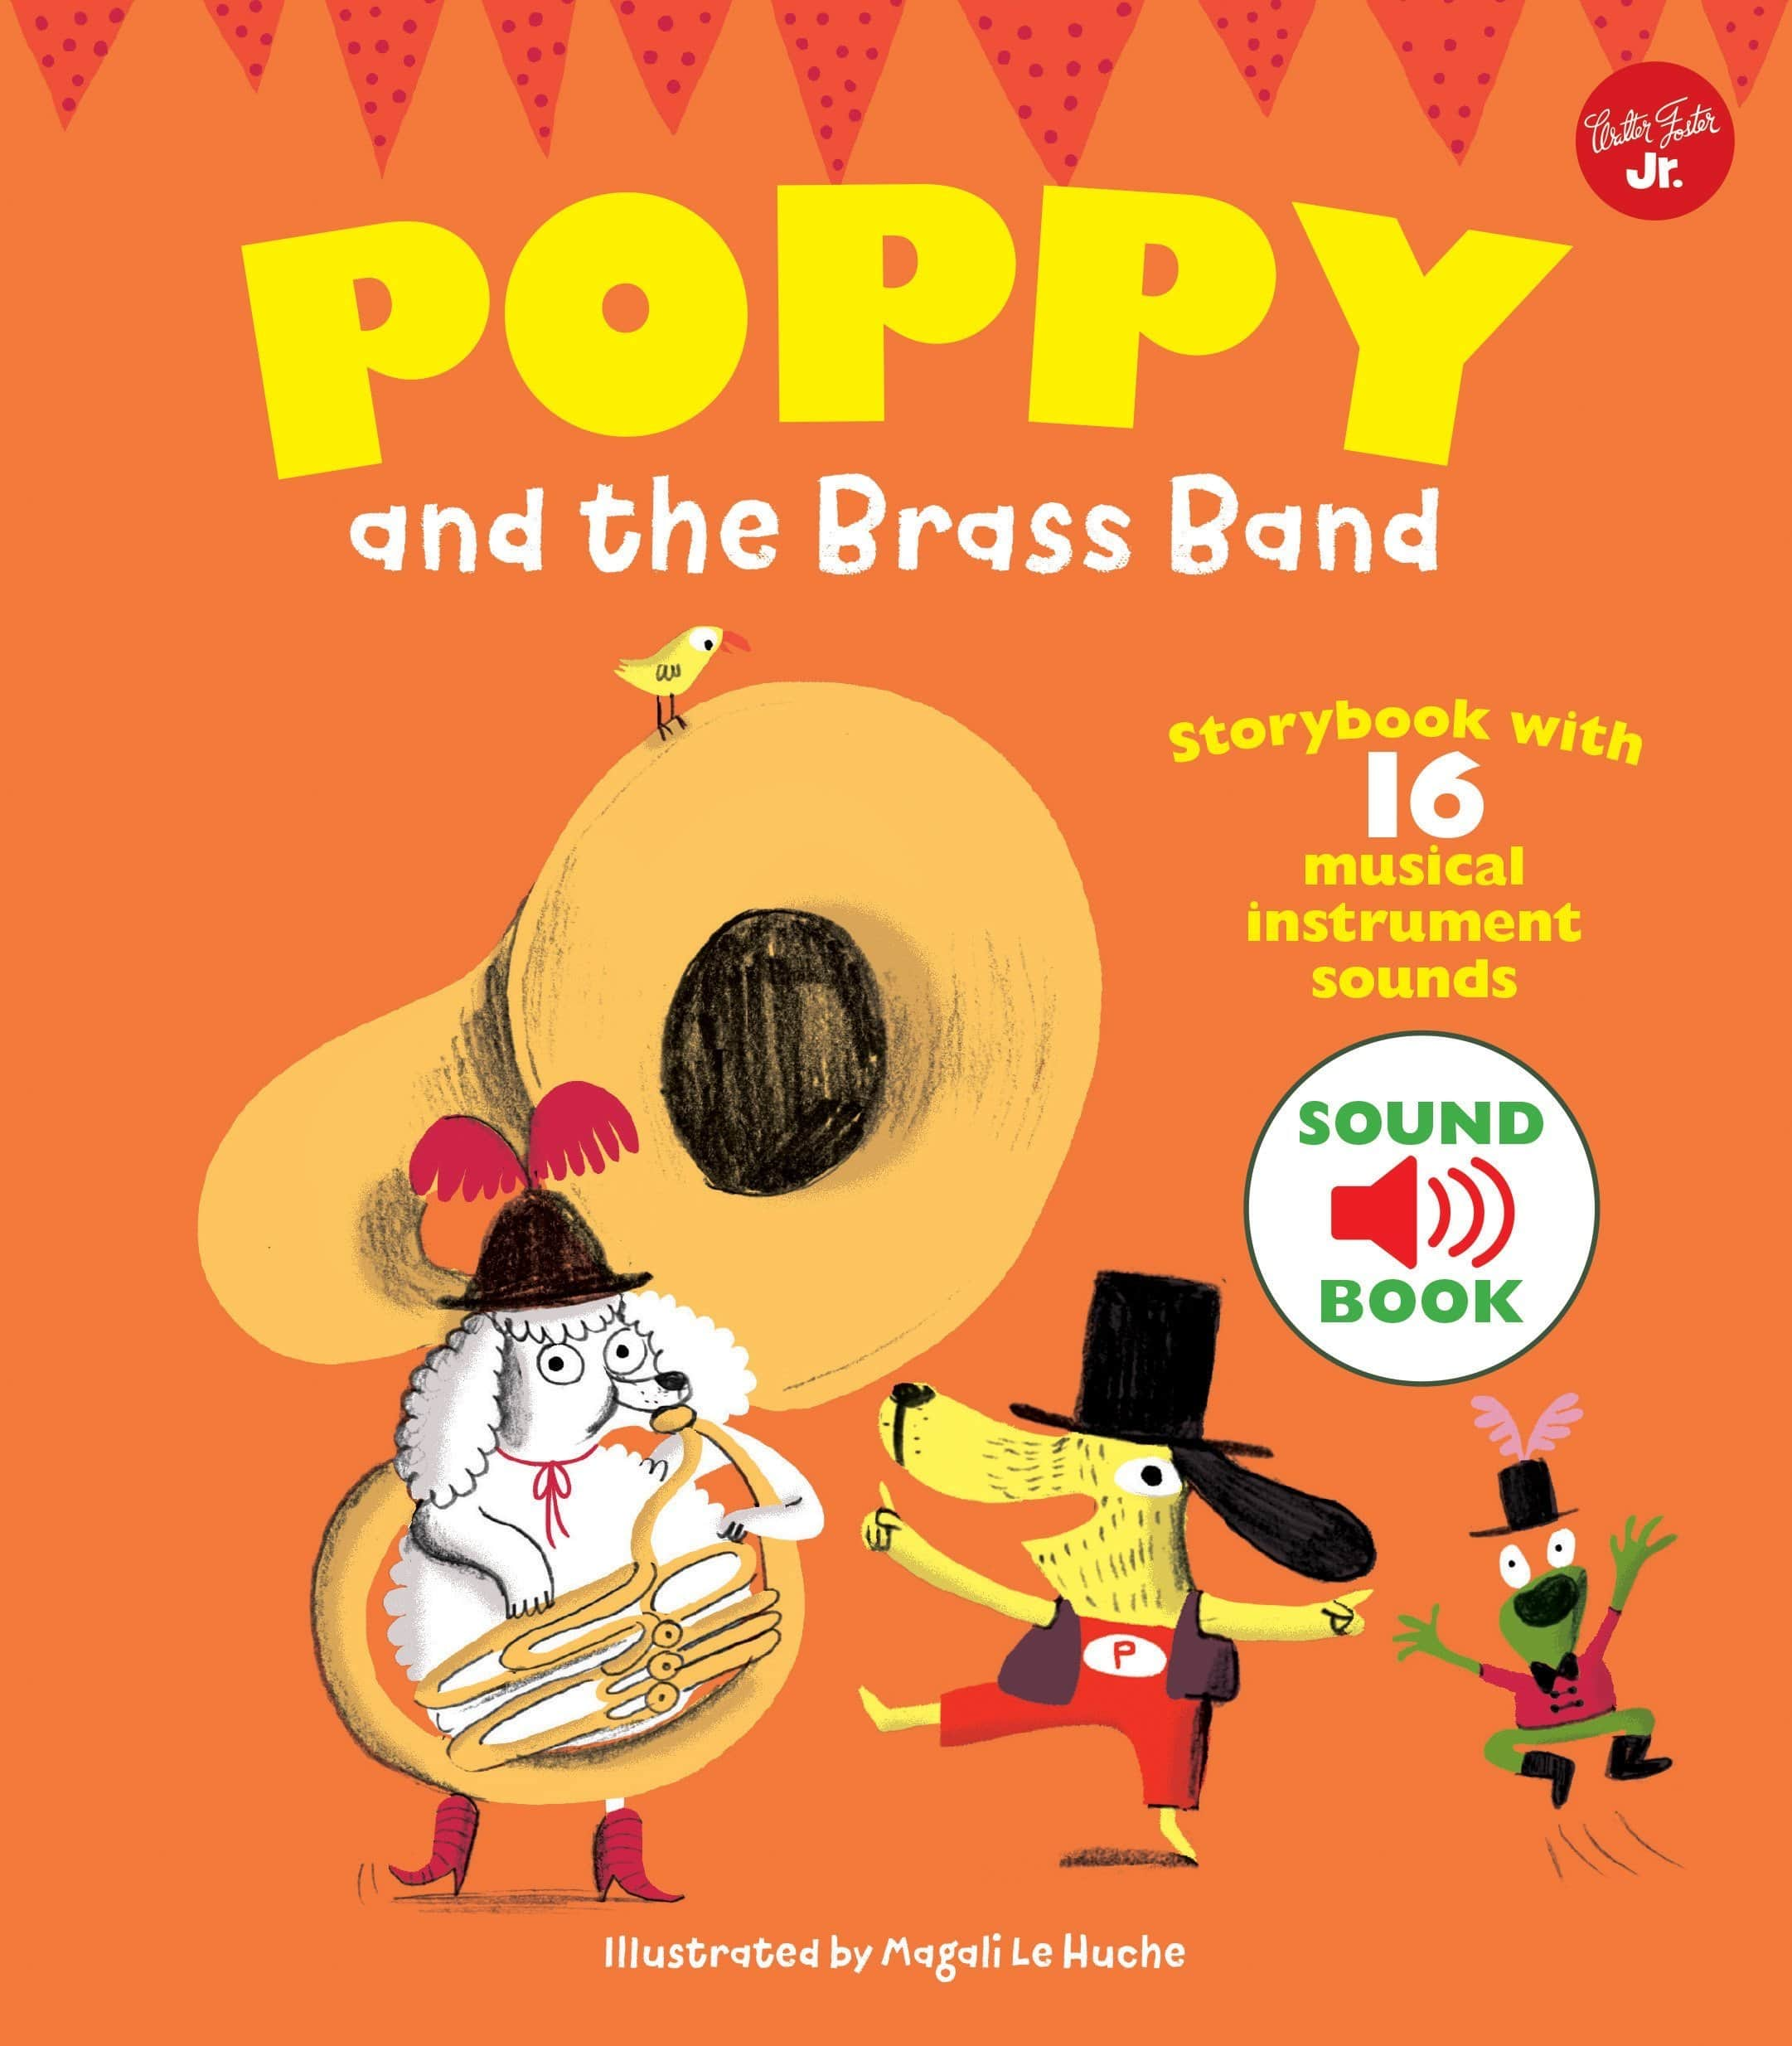 POPPY & THE BRASS BAND